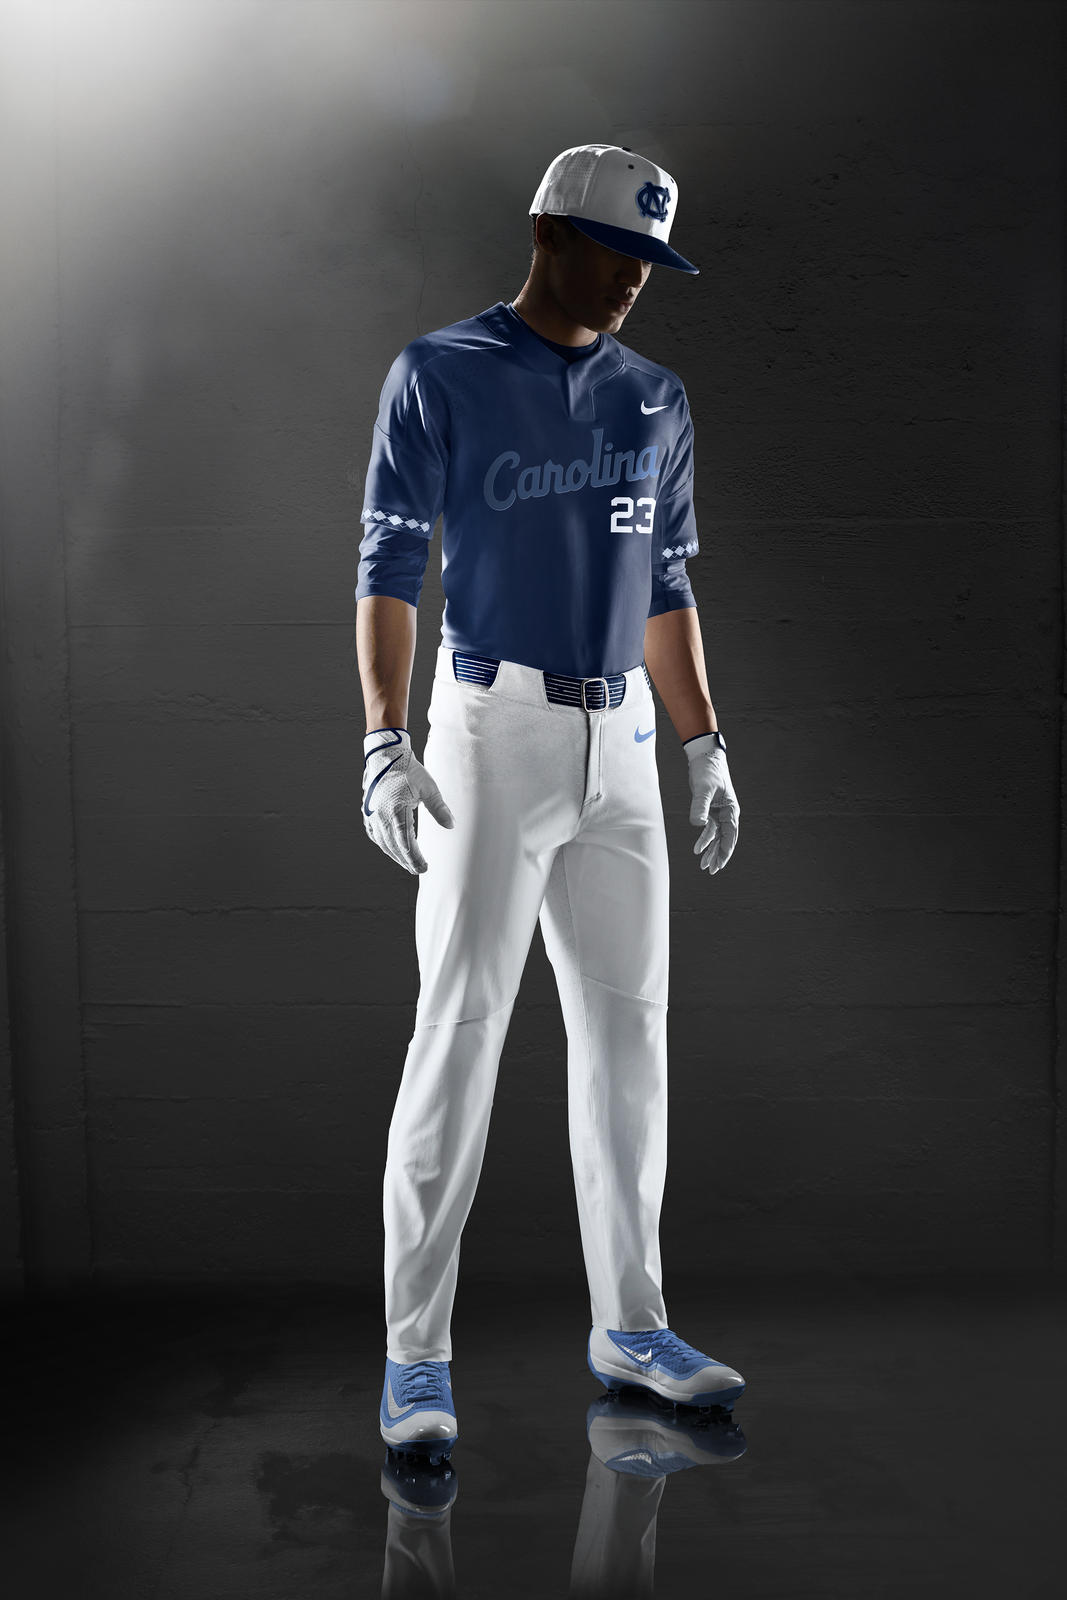 Nike Baseball Uniforms